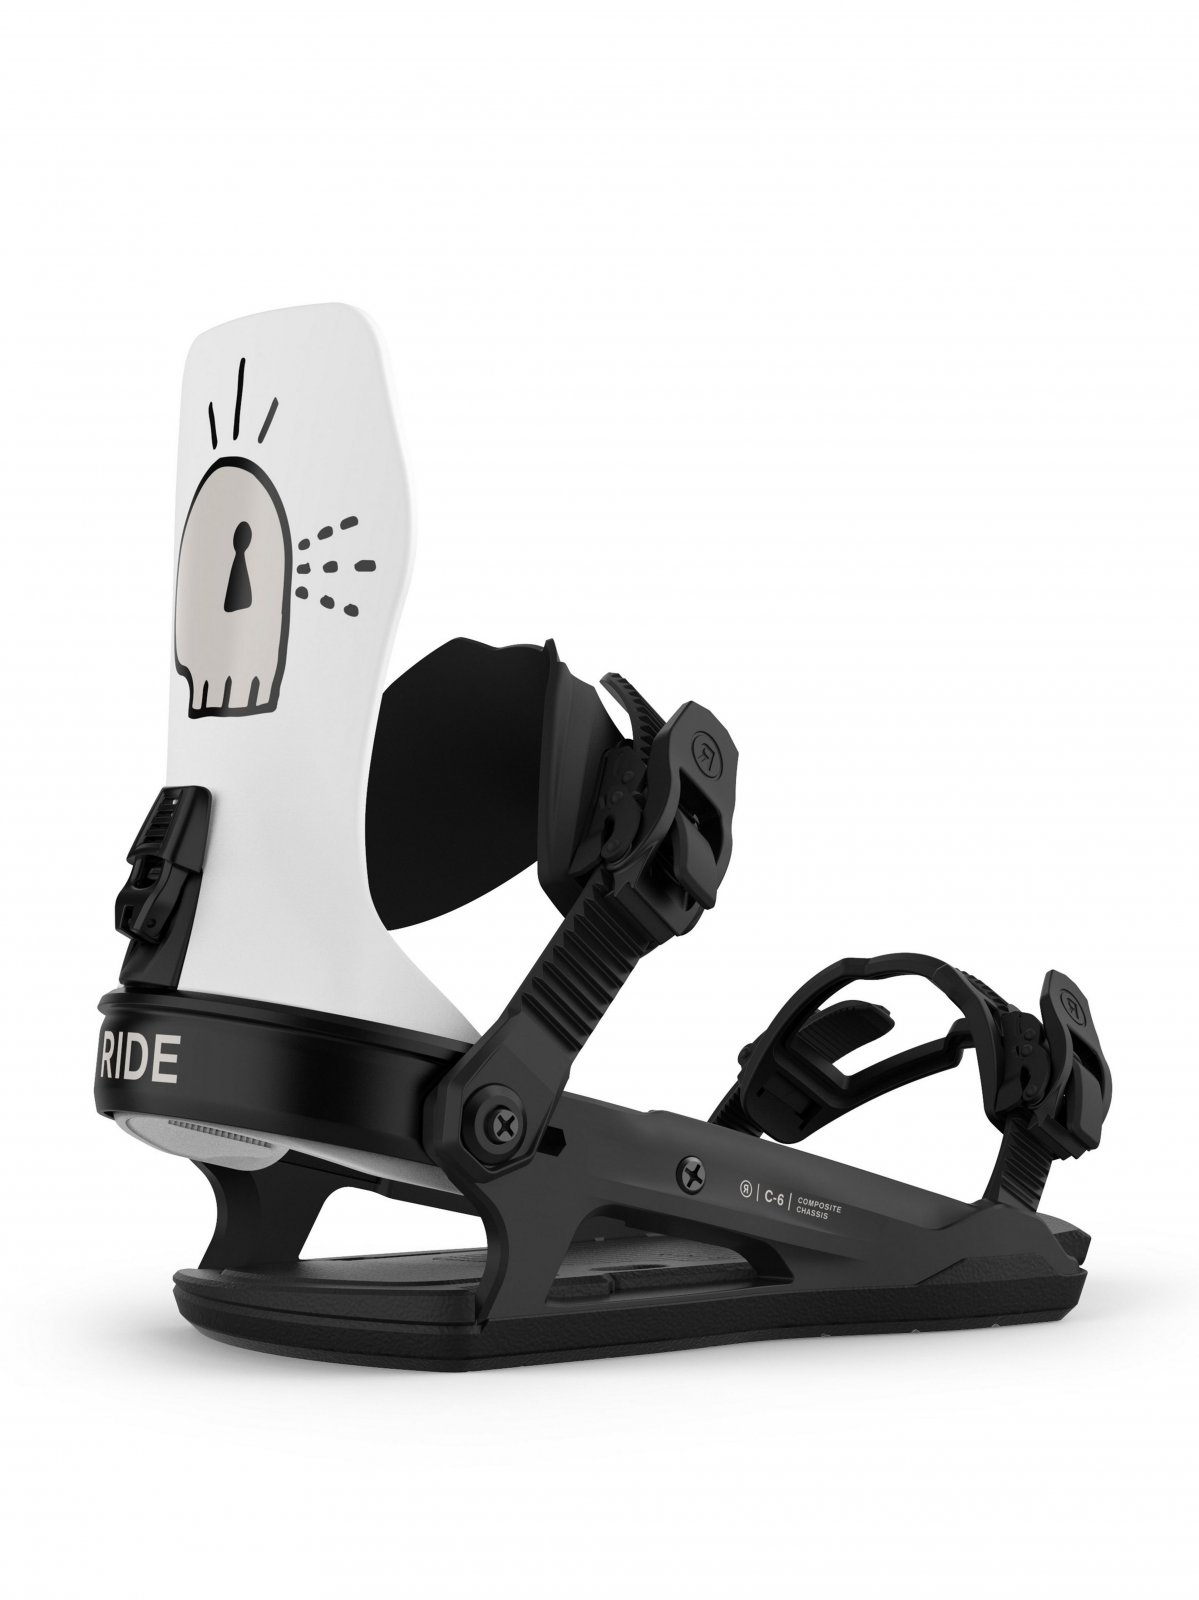 2021 Ride C-6 Men's Snowboard Bindings